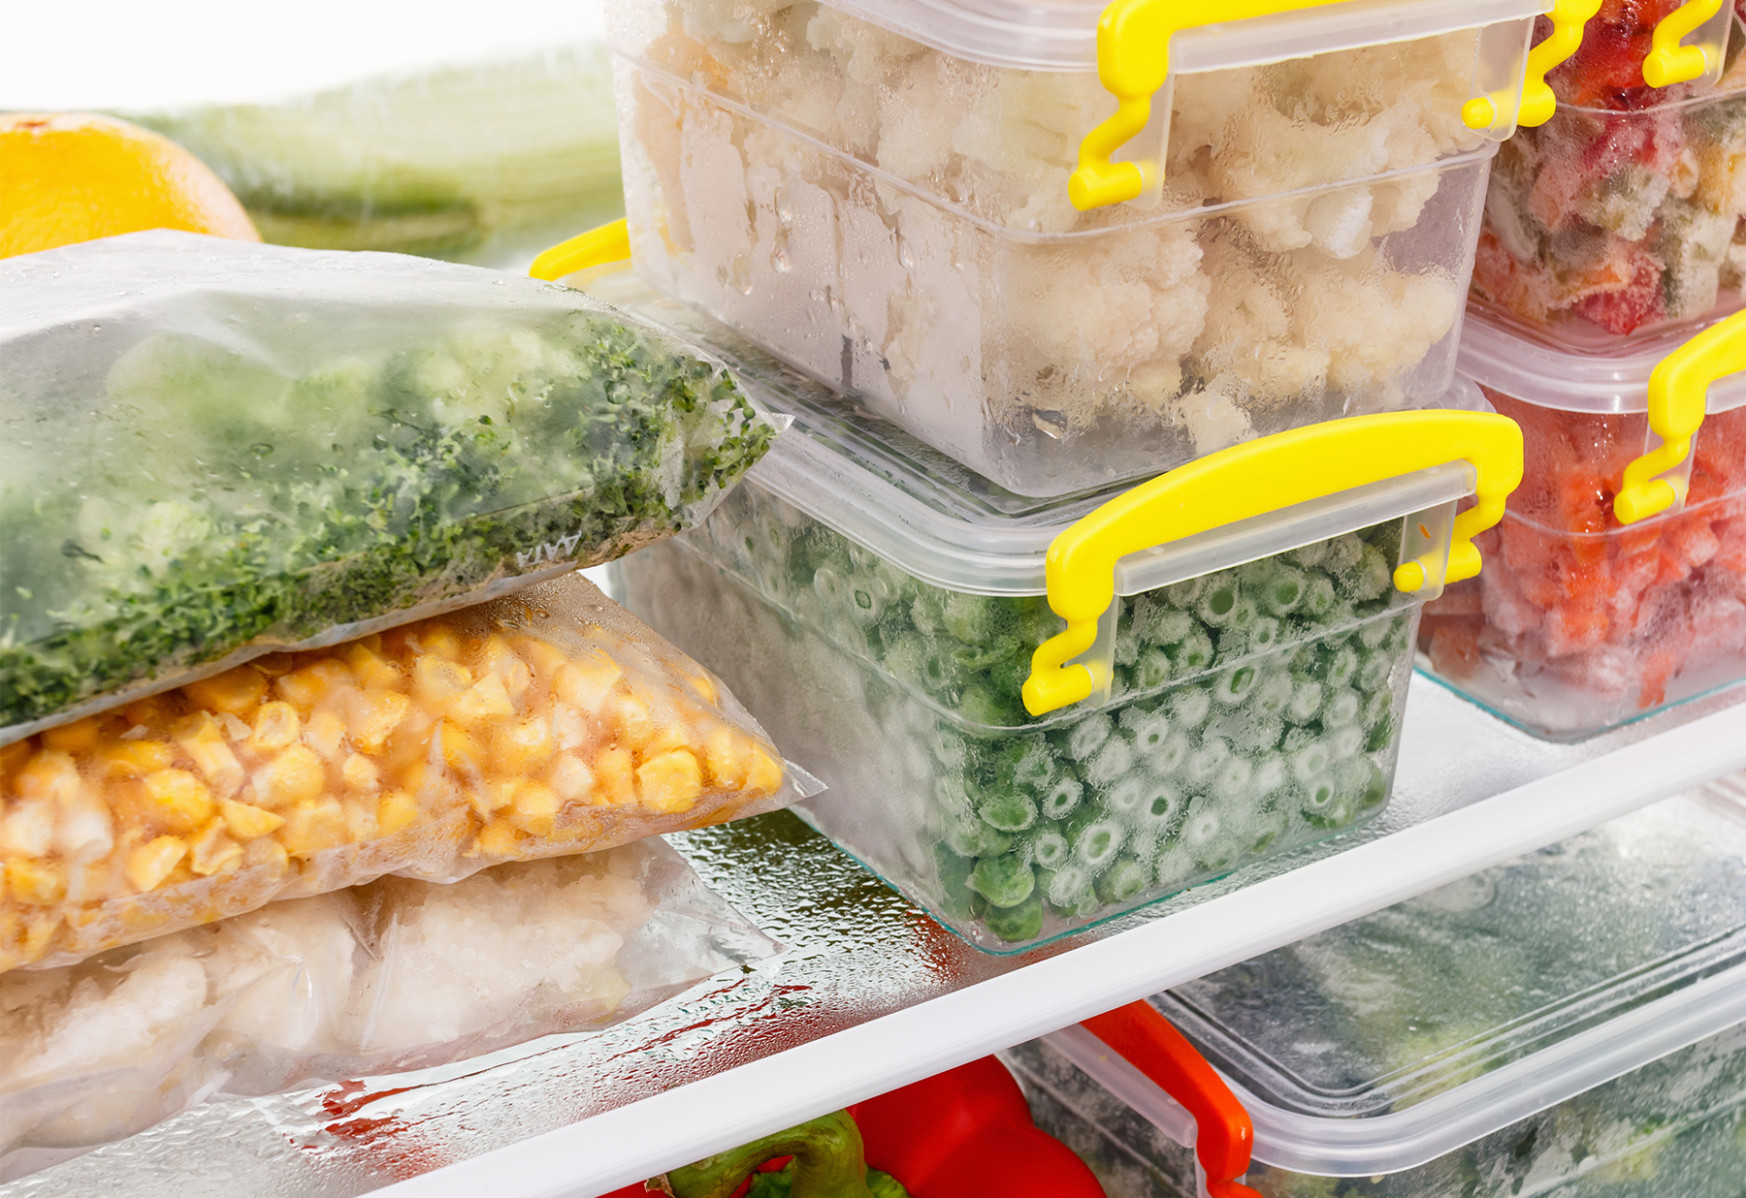 Best Freezer Meals And How To Store Them So They Last - Recipes To Freeze For Dinner